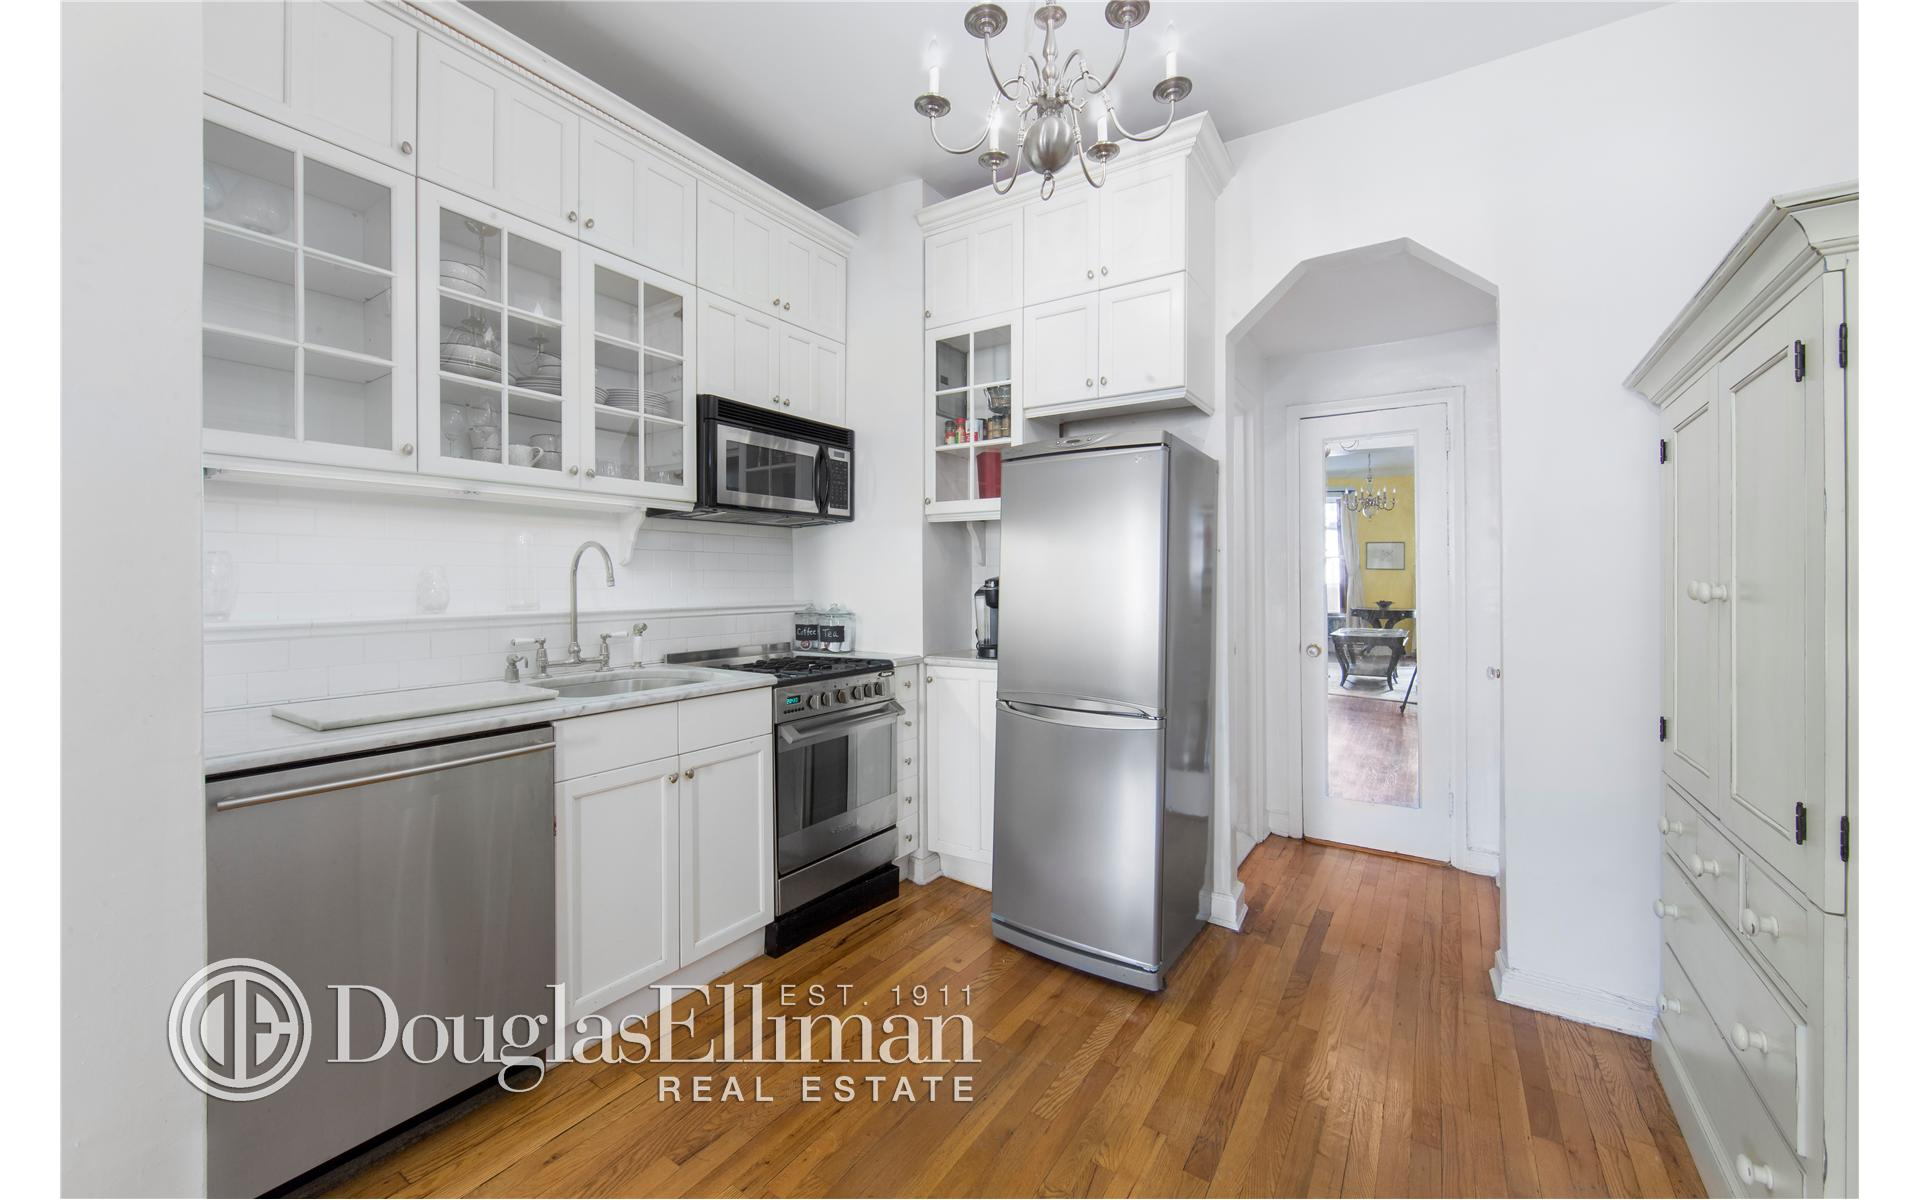 Streeteasy 346 East 58th Street In Sutton Place 2a